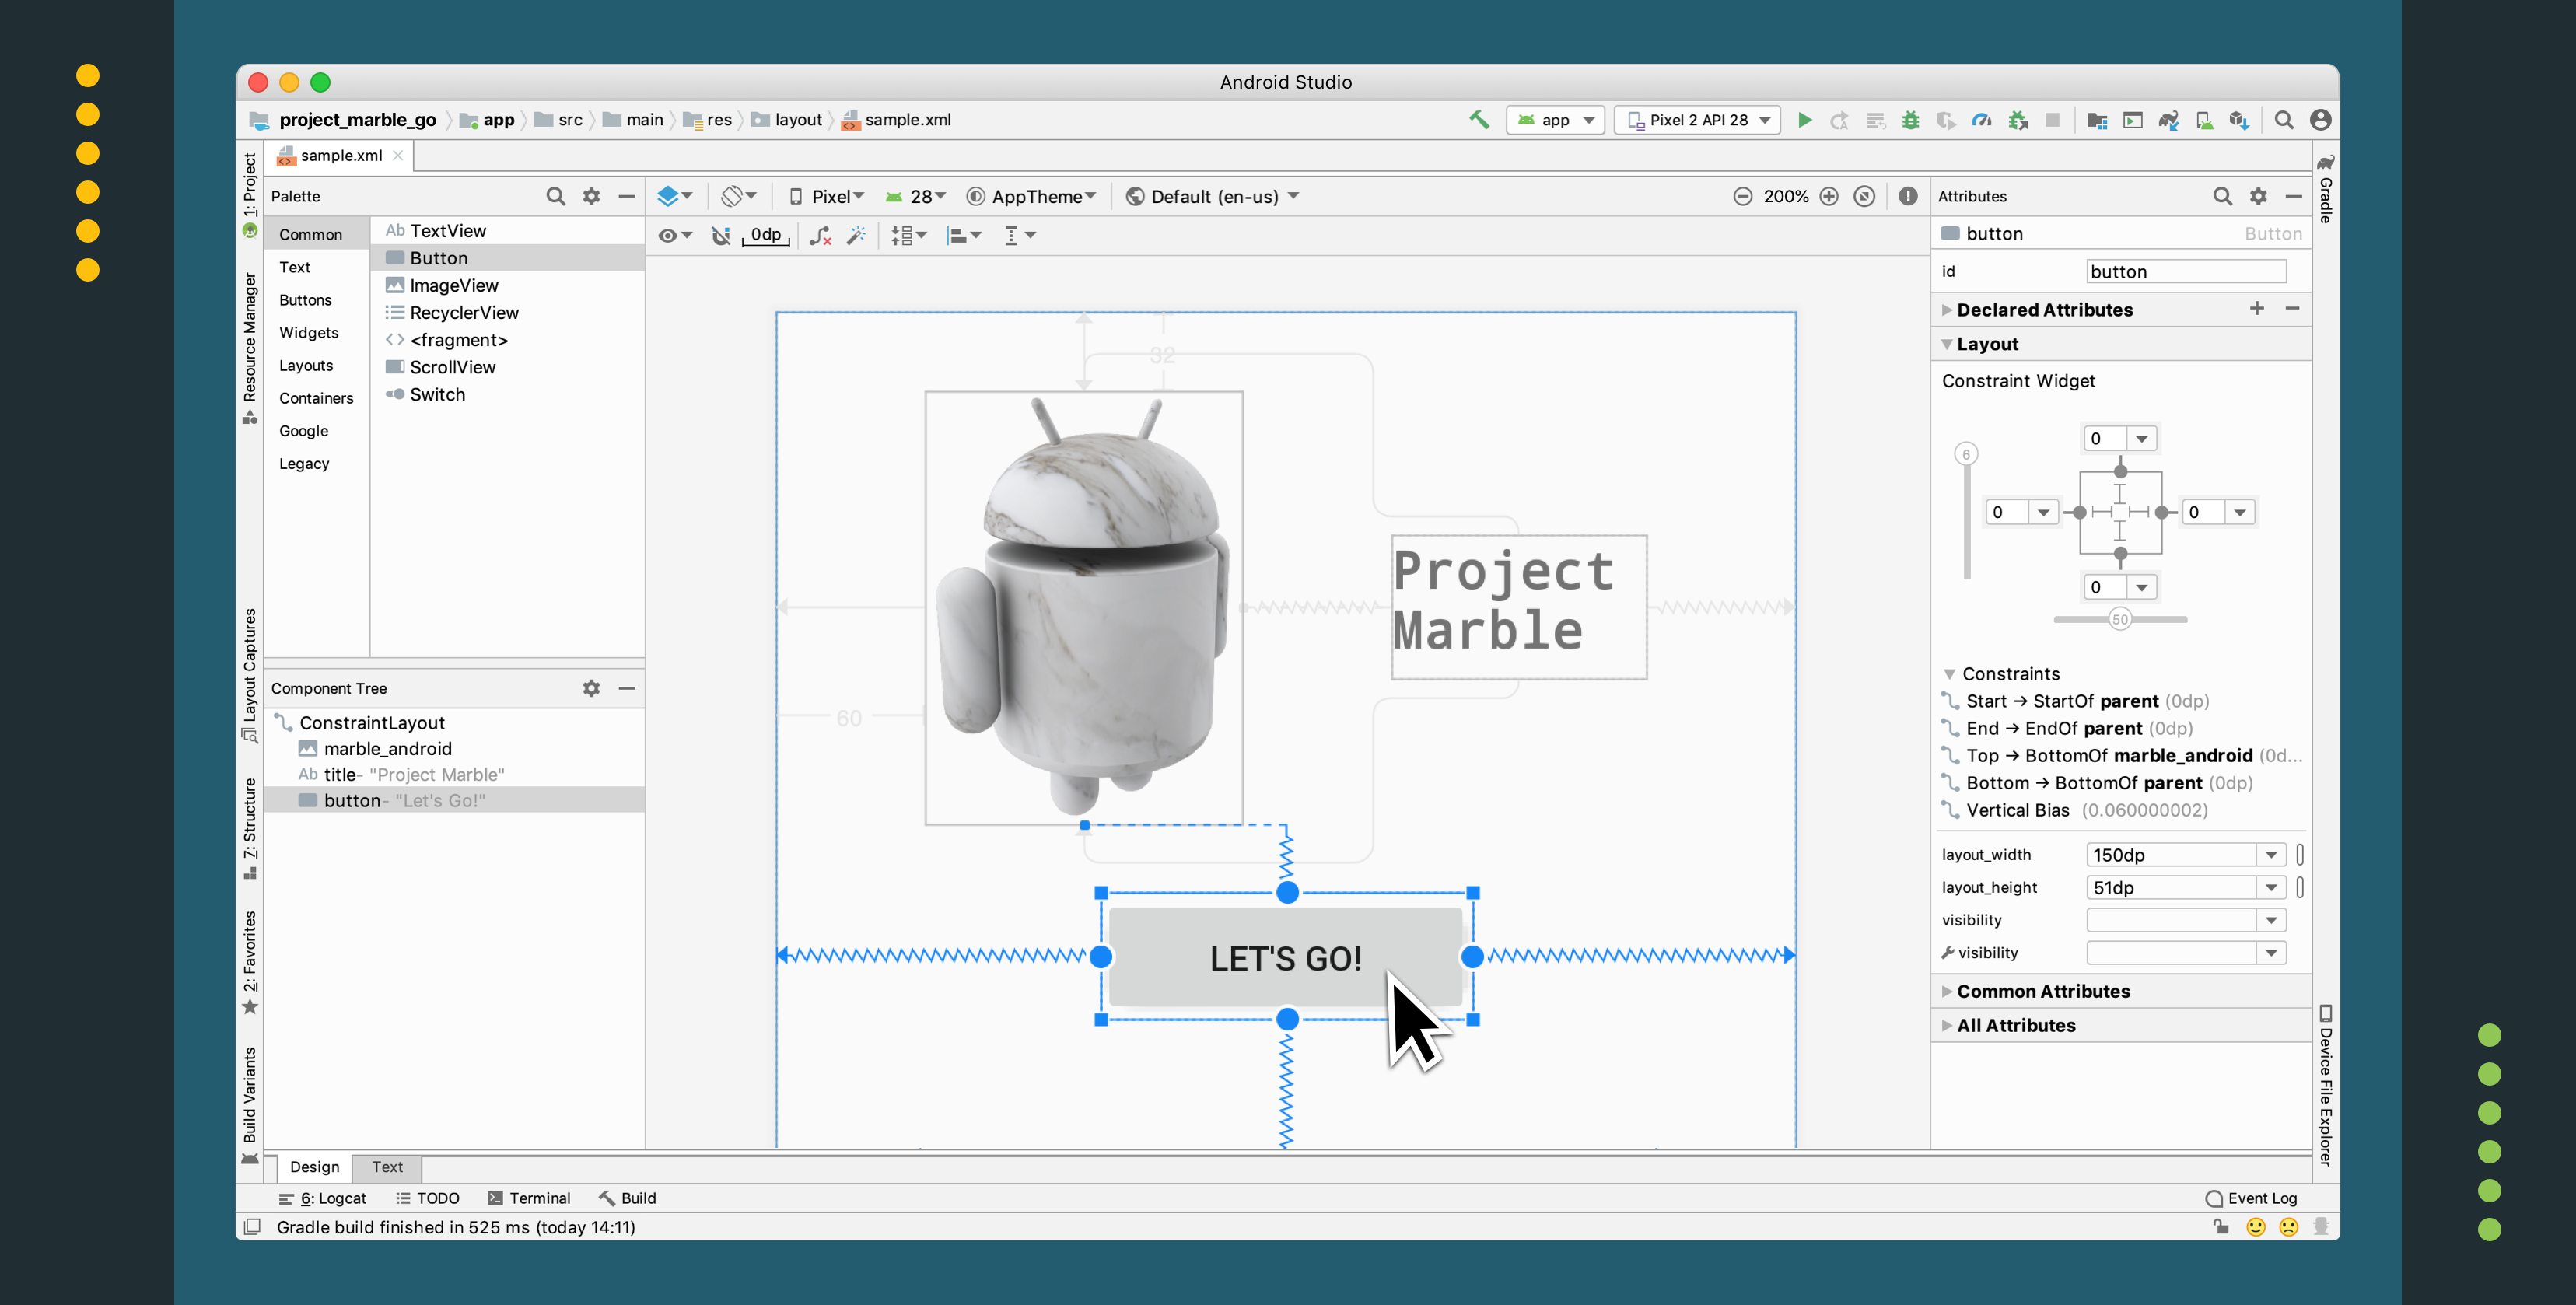 Android Studio Project Marble: Layout Editor - Android